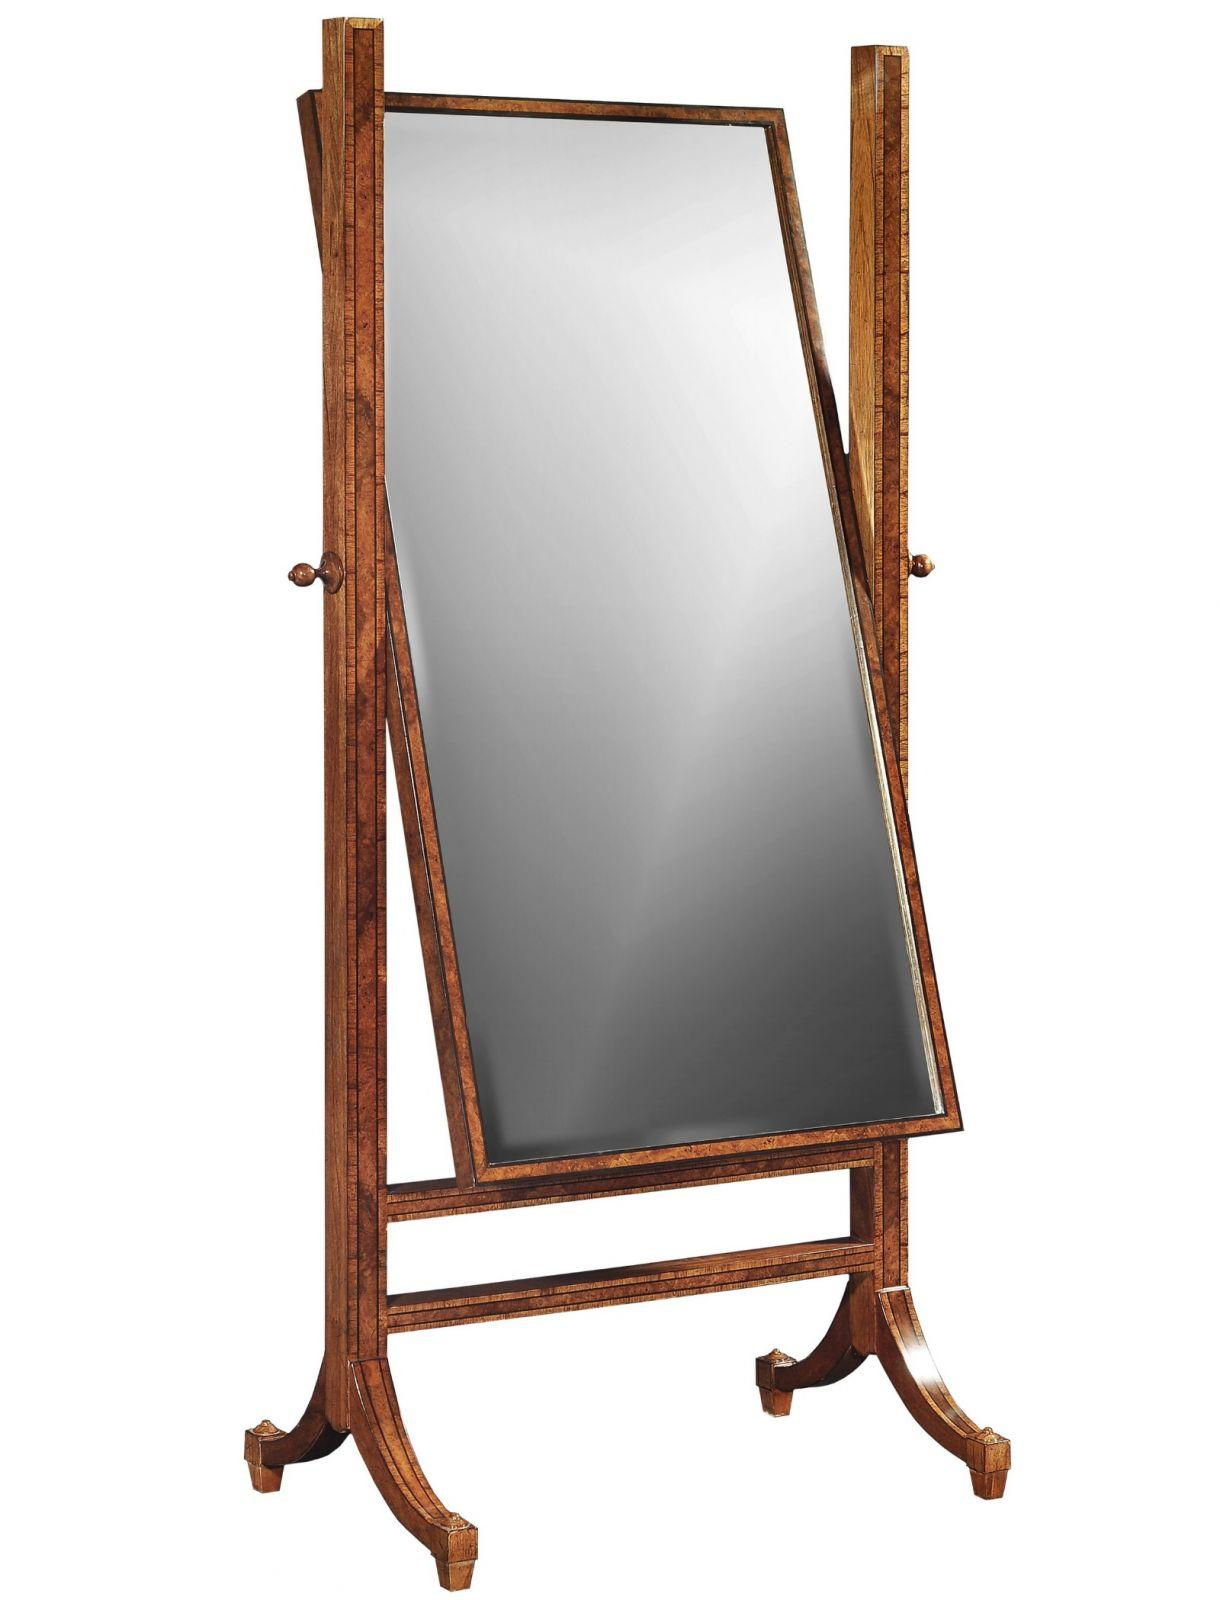 Dorchester cheval mirror dressing mirrors from brights of for Cheval mirror